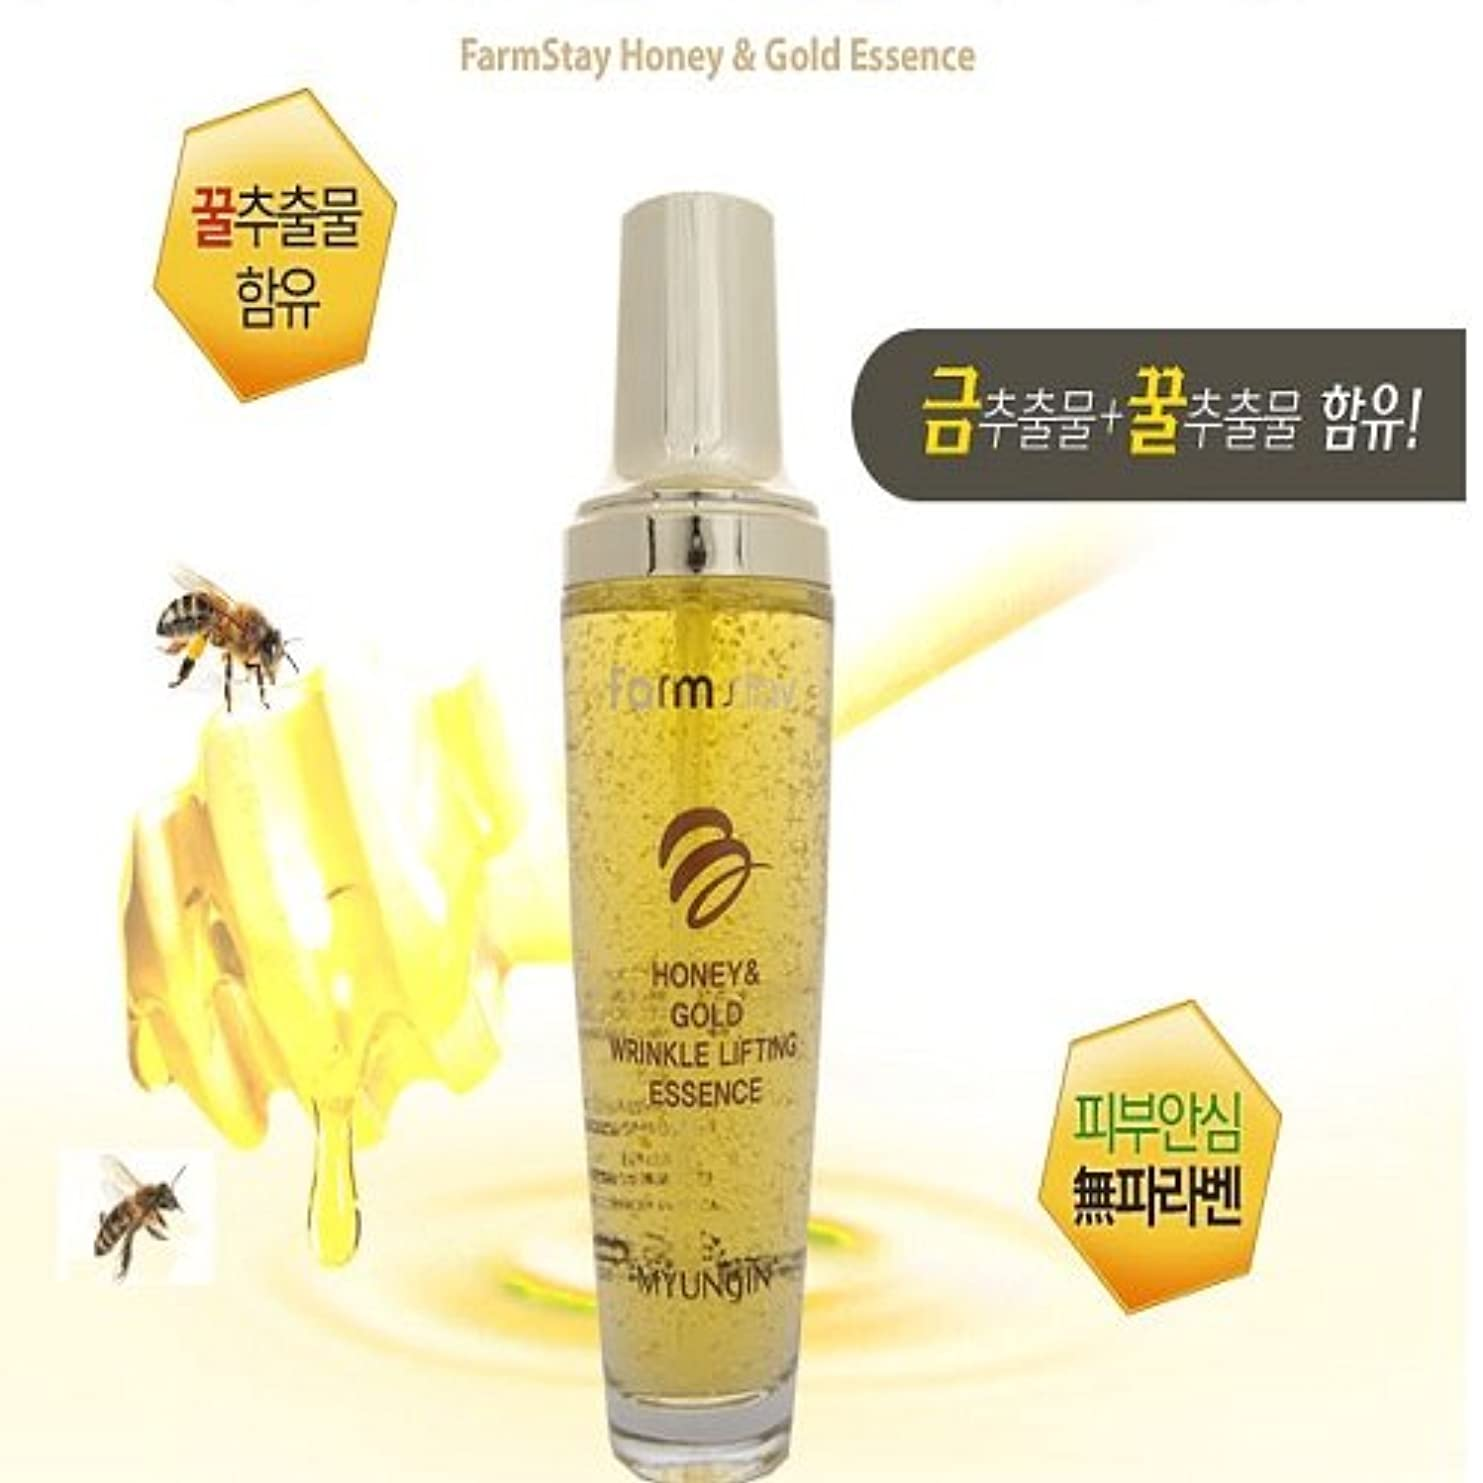 上院議員活気づく熟読[FARM STAY] Honey & Gold Wrinkle Lifting Essence 130ml